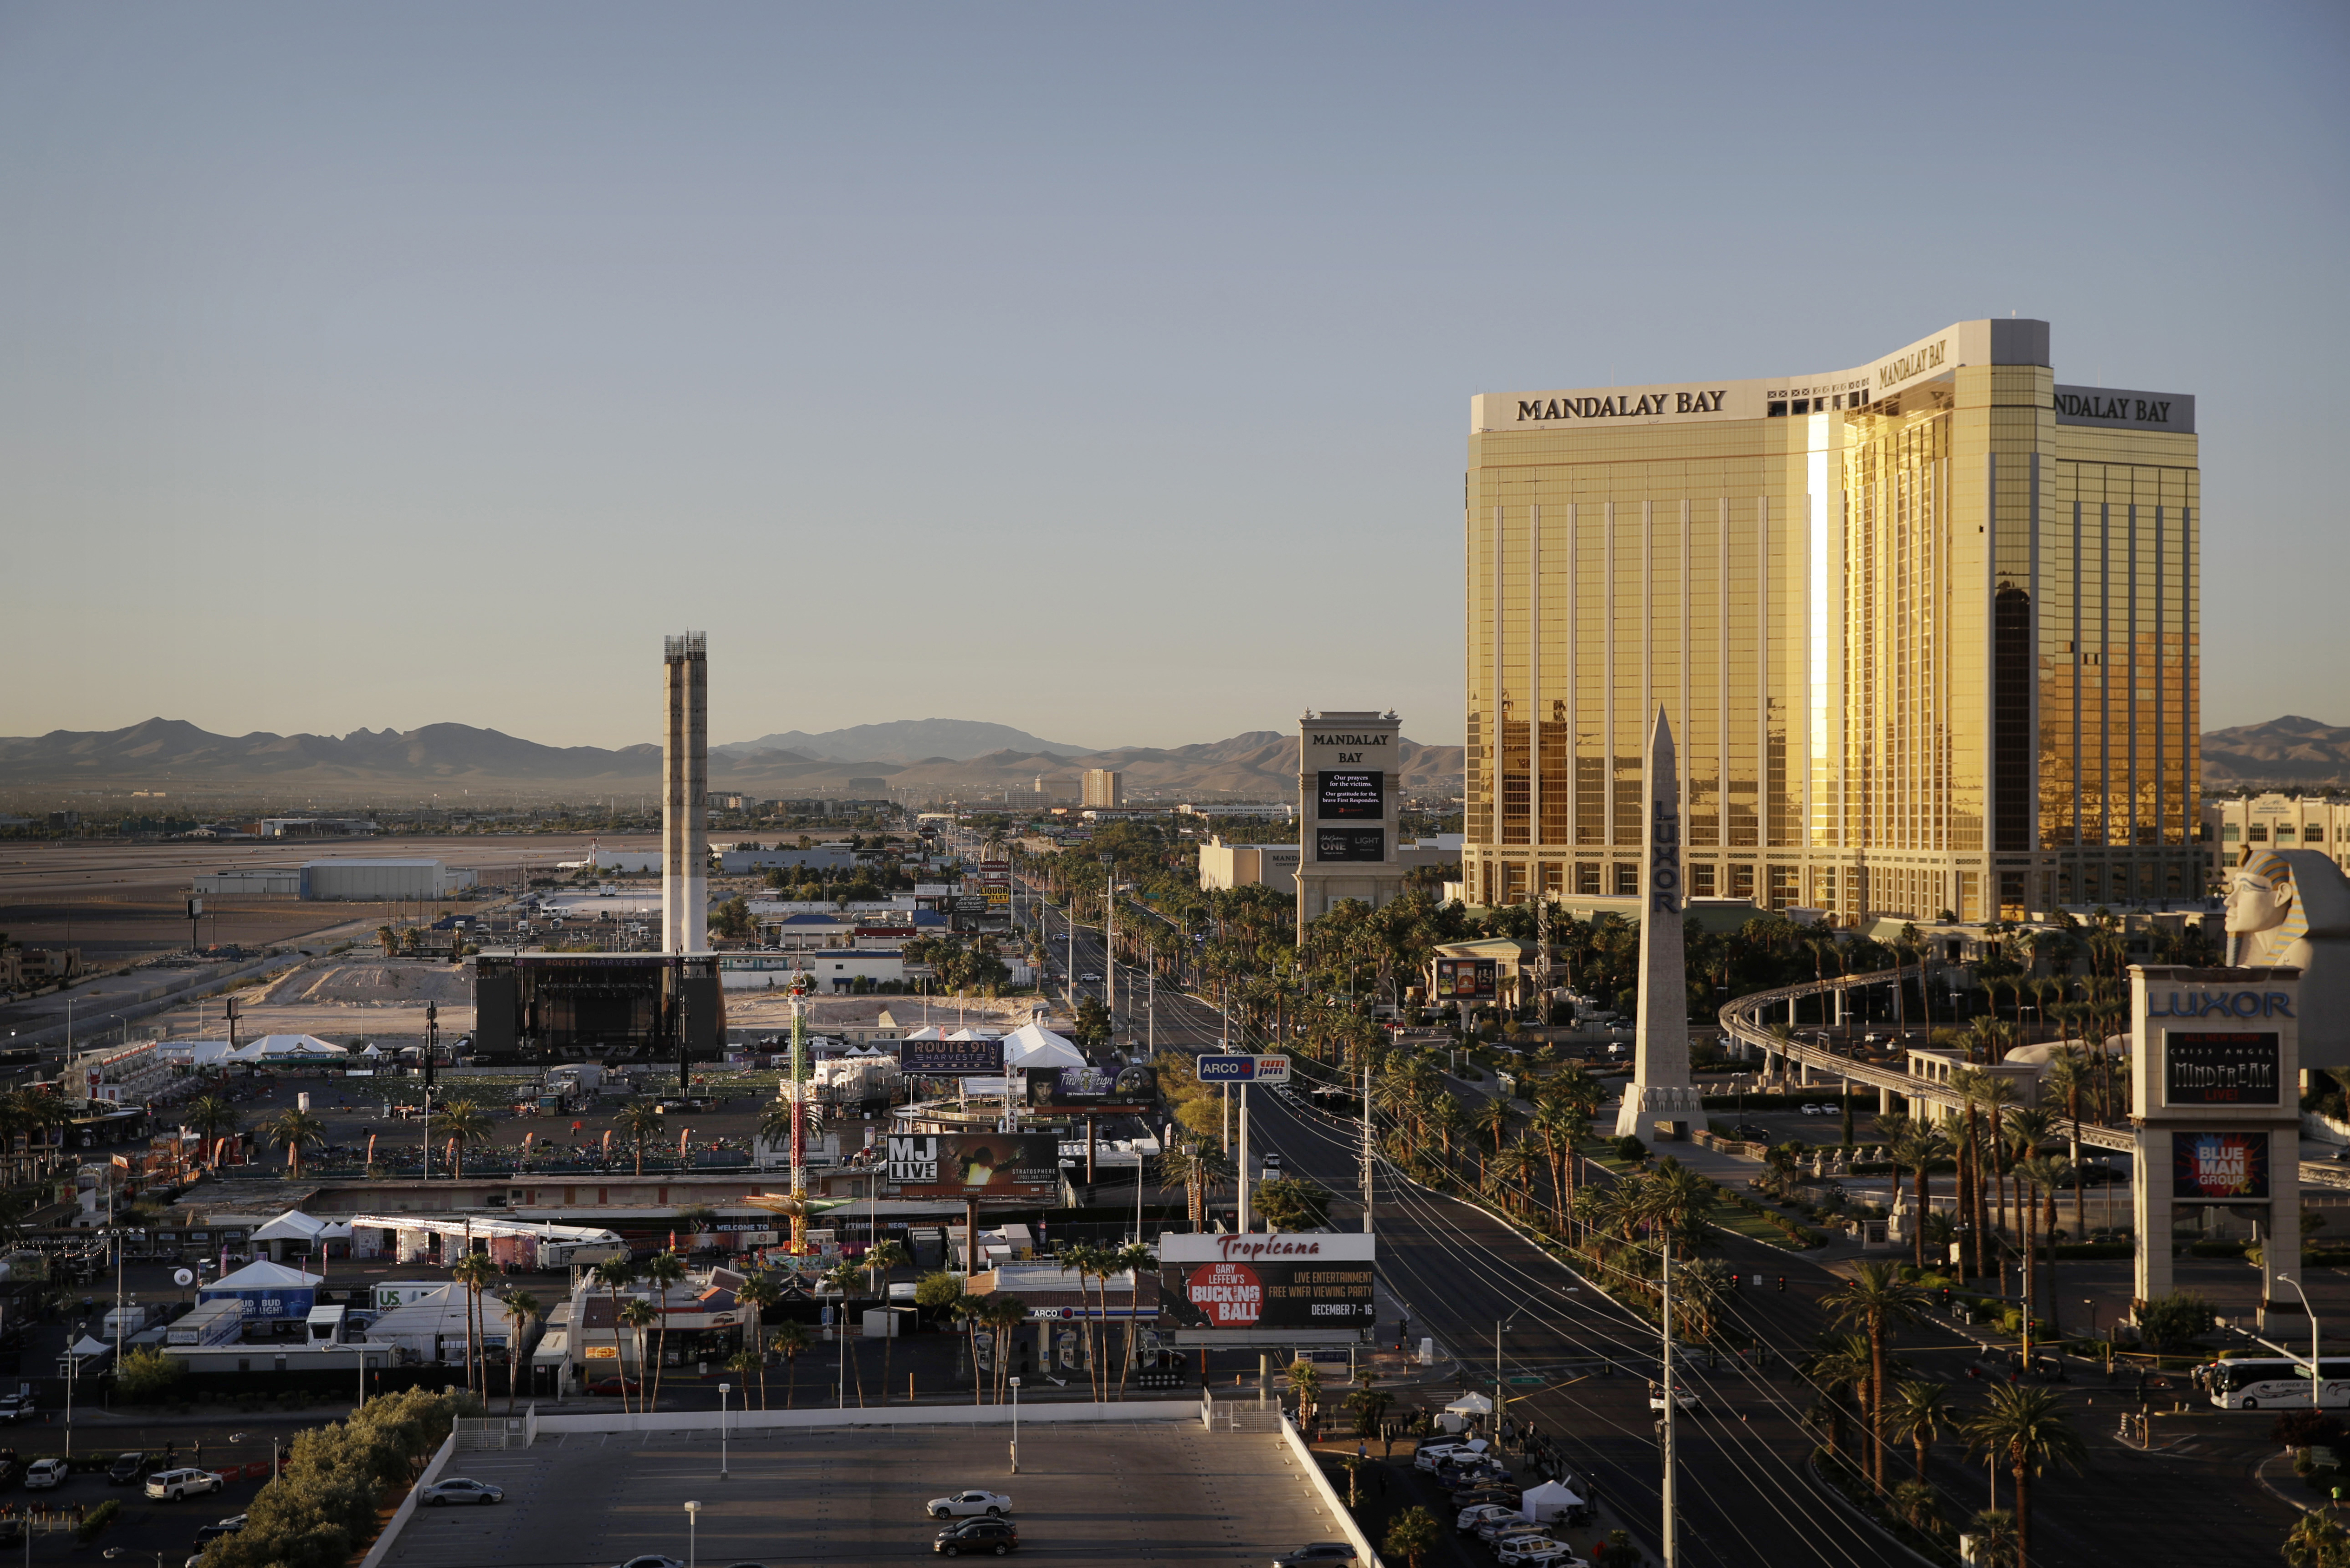 Vegas police fire officer who hesitated during mass shooting